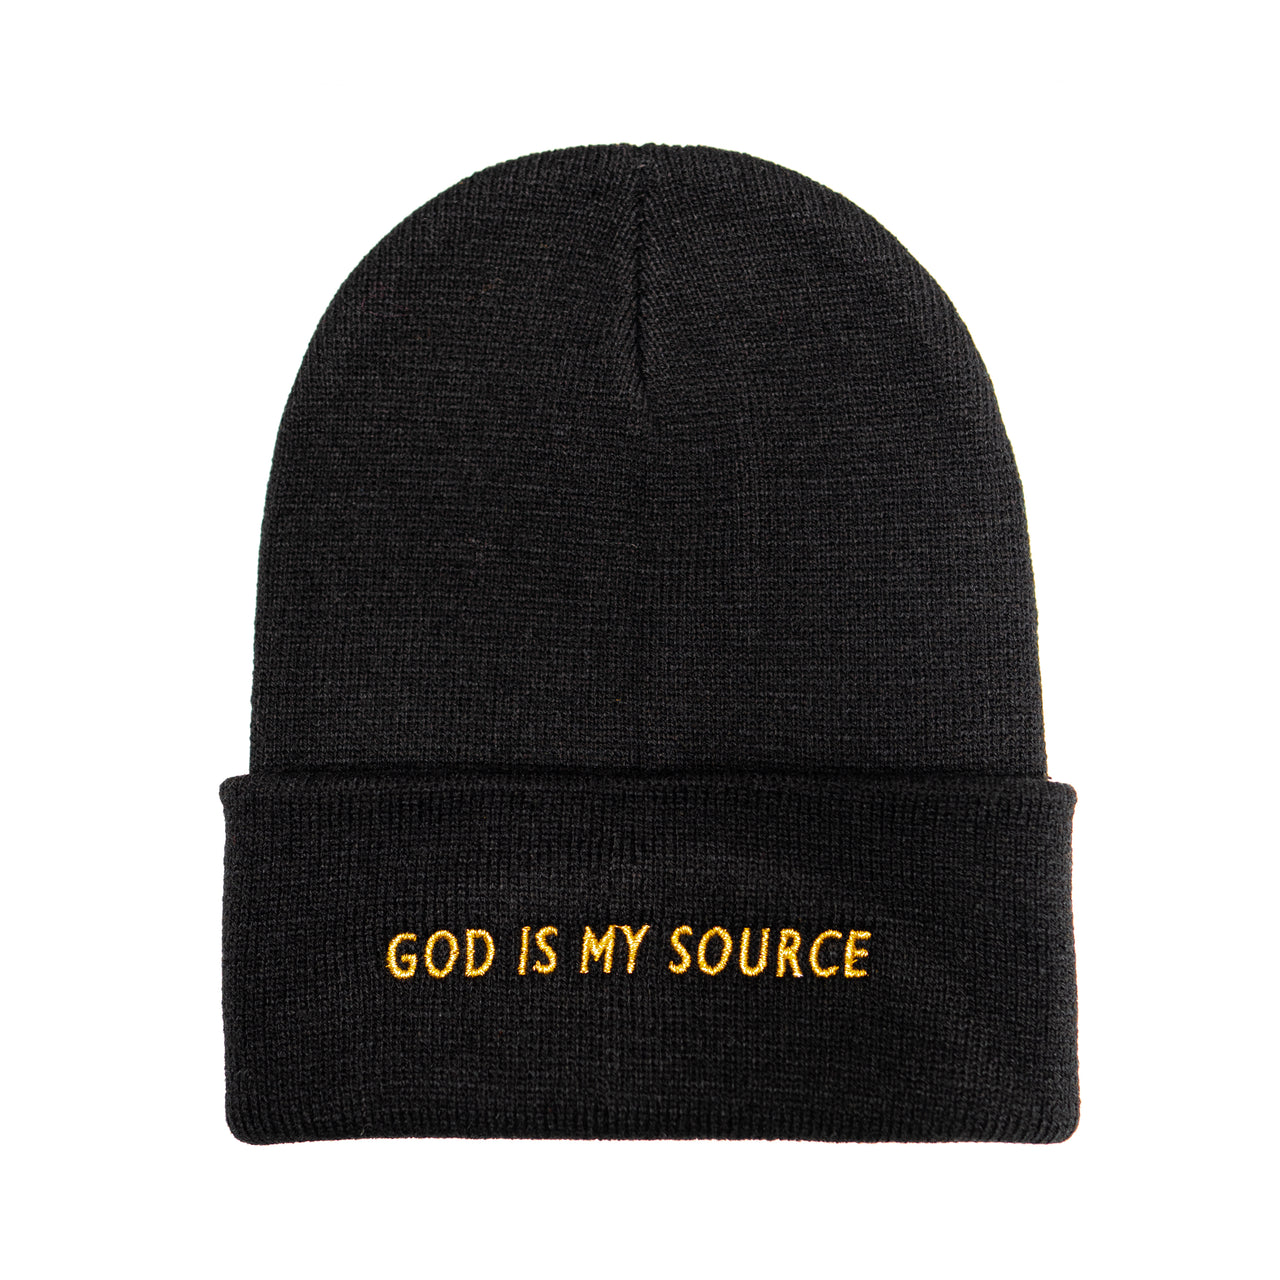 God Is My Source Beanie Black/Gold - hat God Is My Source